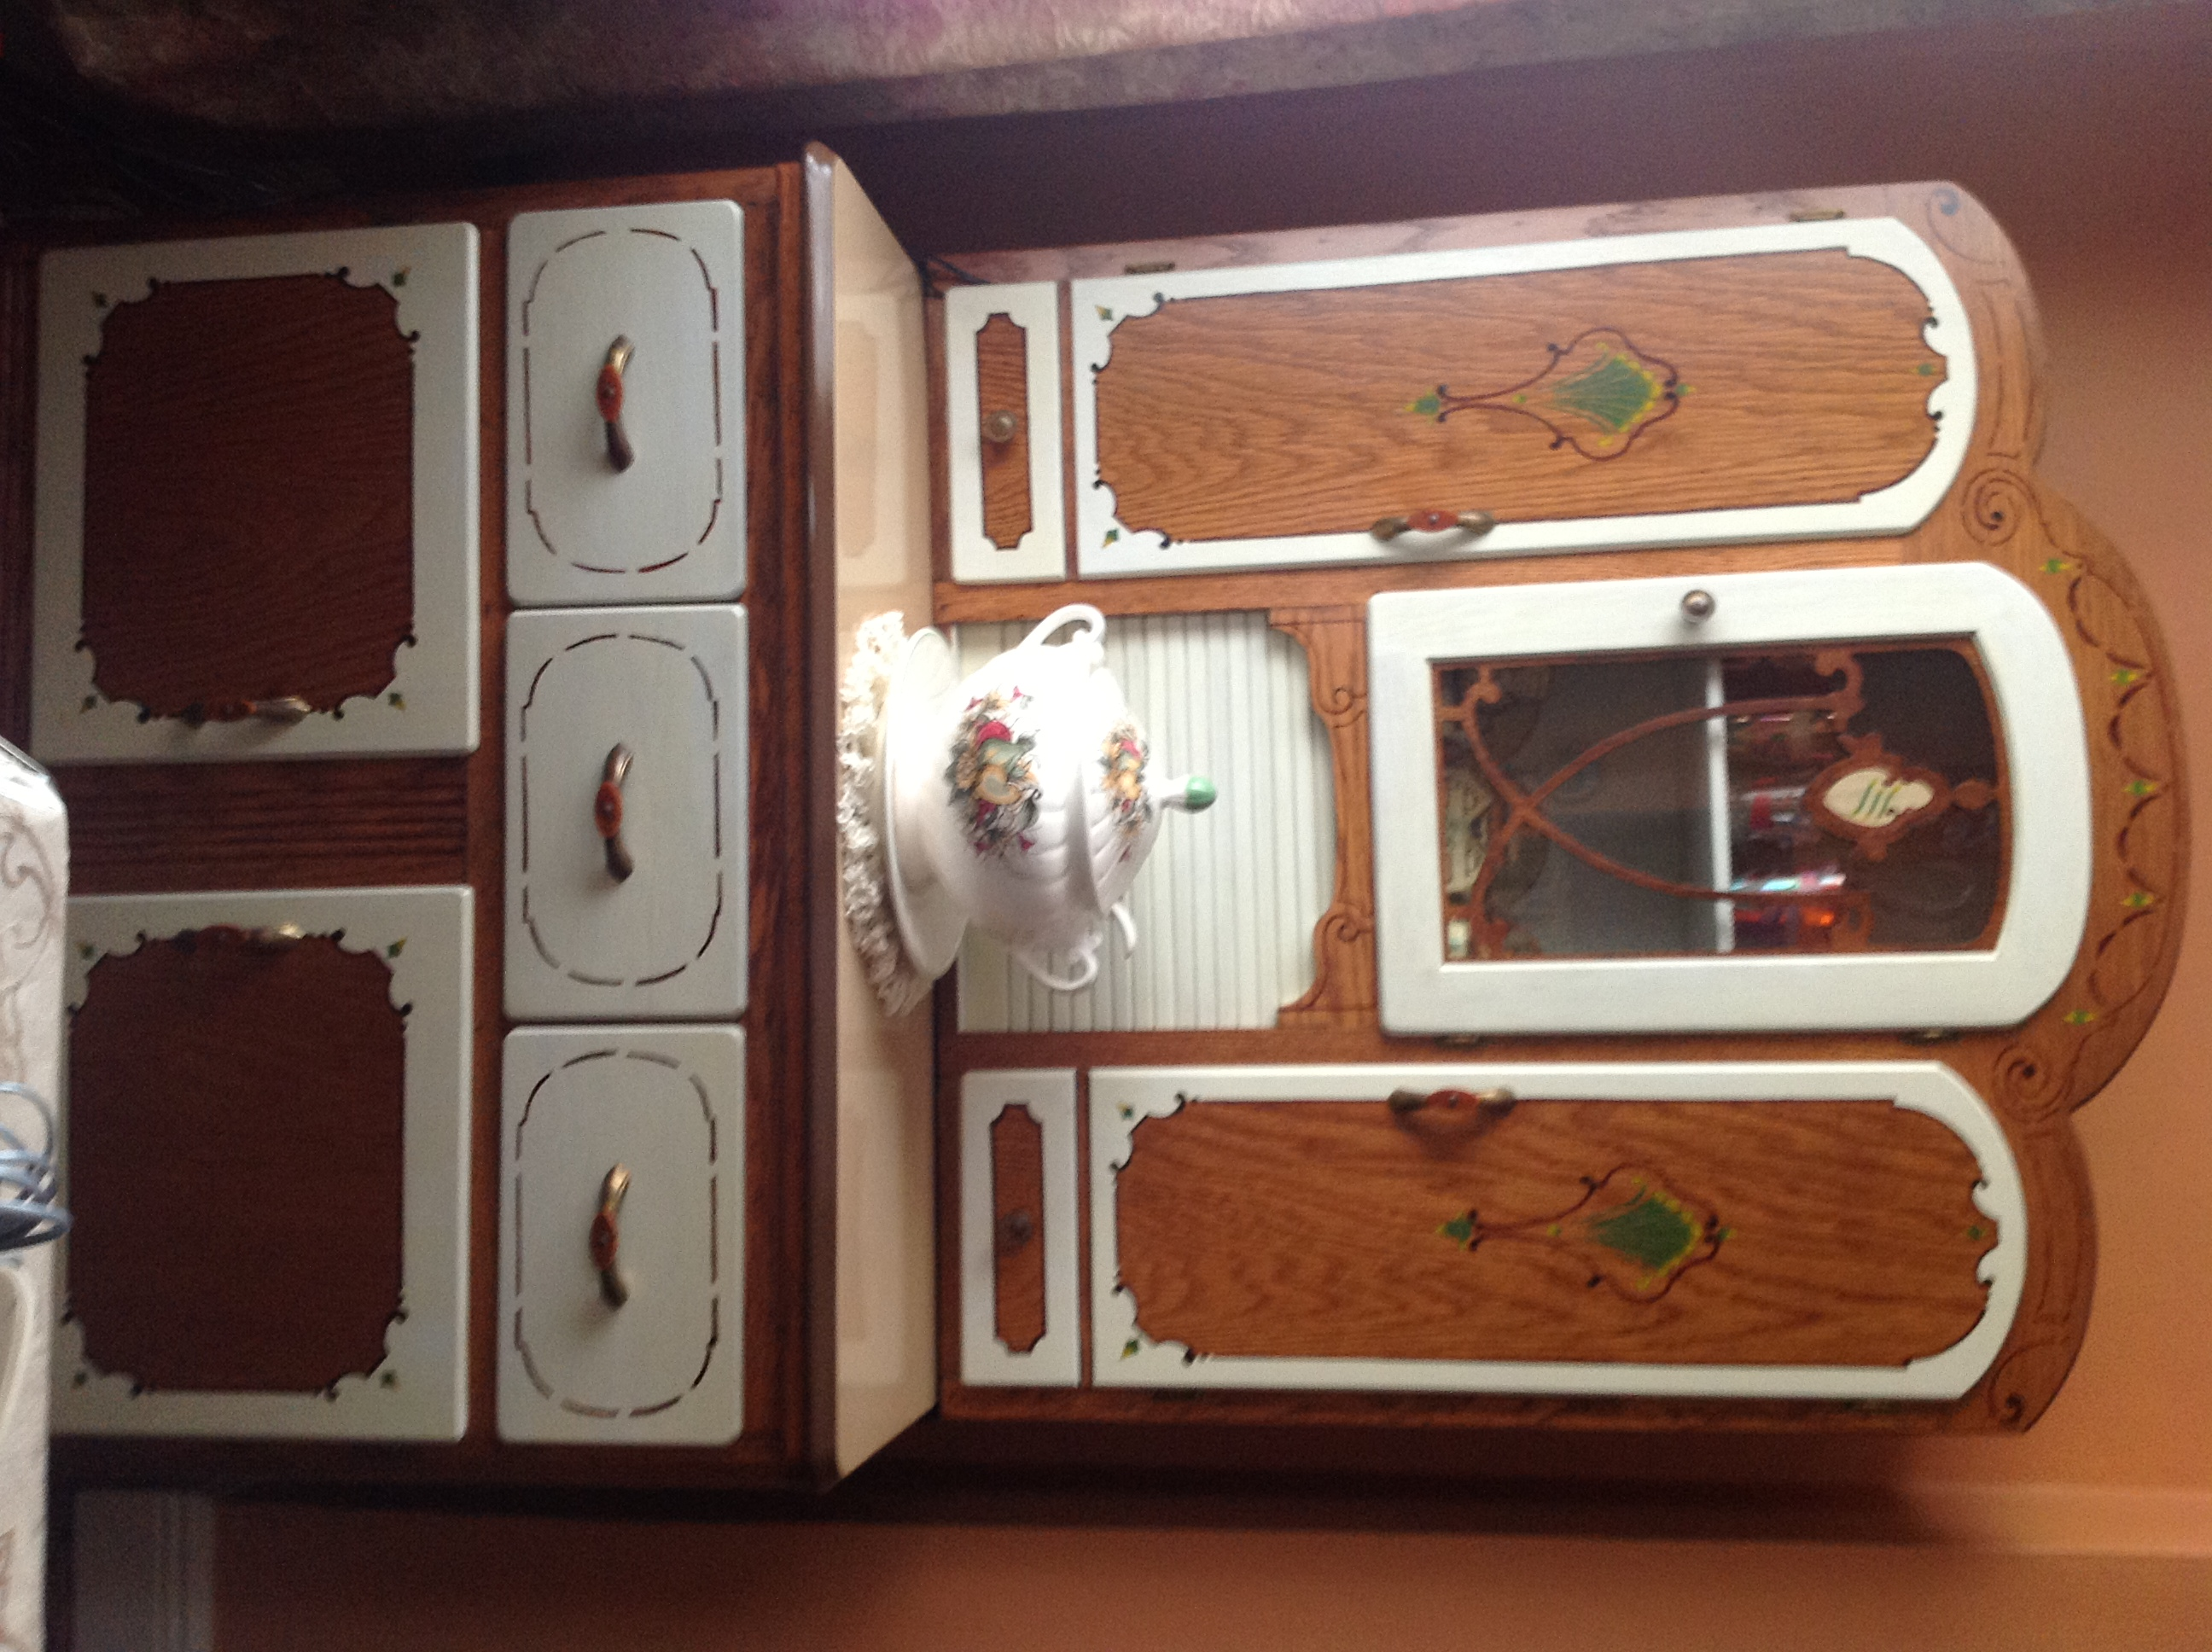 Some 15 Years Ago My Nana Left Me As Promised A Baker S Hutch Manufactured By The Keystone Cabinet Co Littlestown